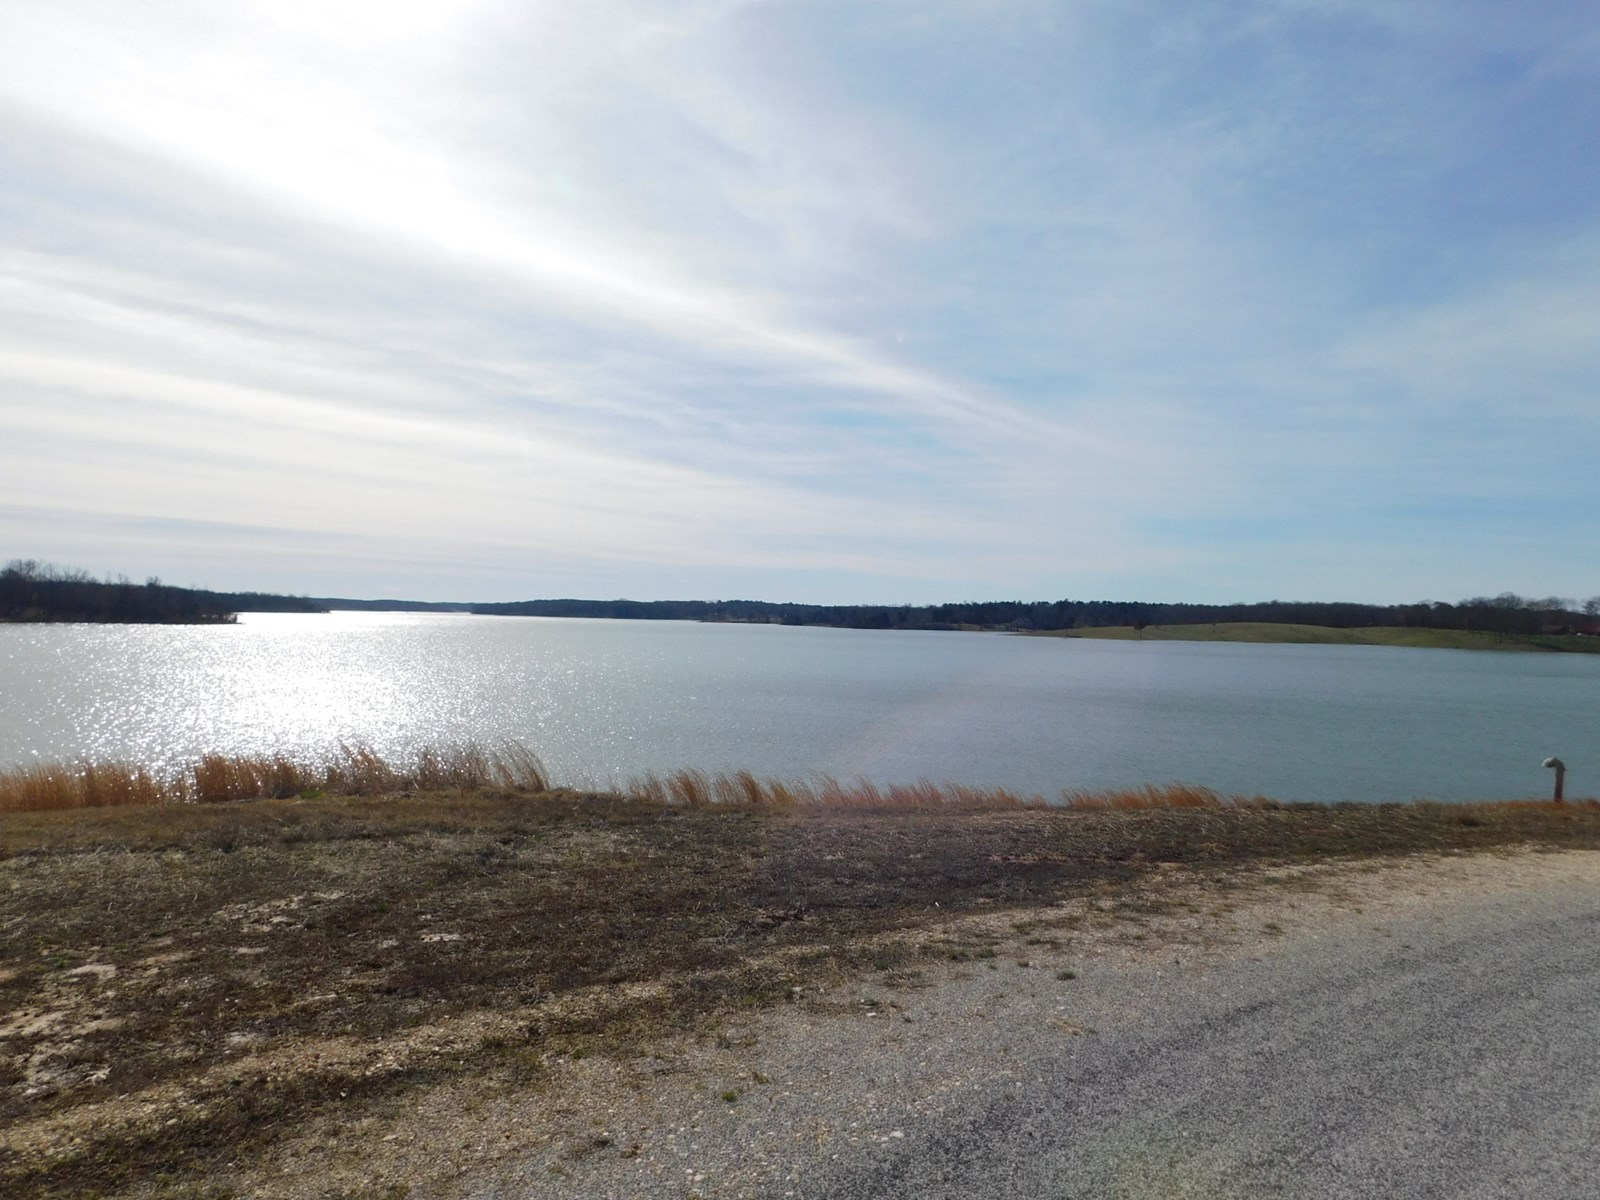 LAND FOR SALE IN TN NEAR FISHING, BOATING, UNRESTRICTED LAND